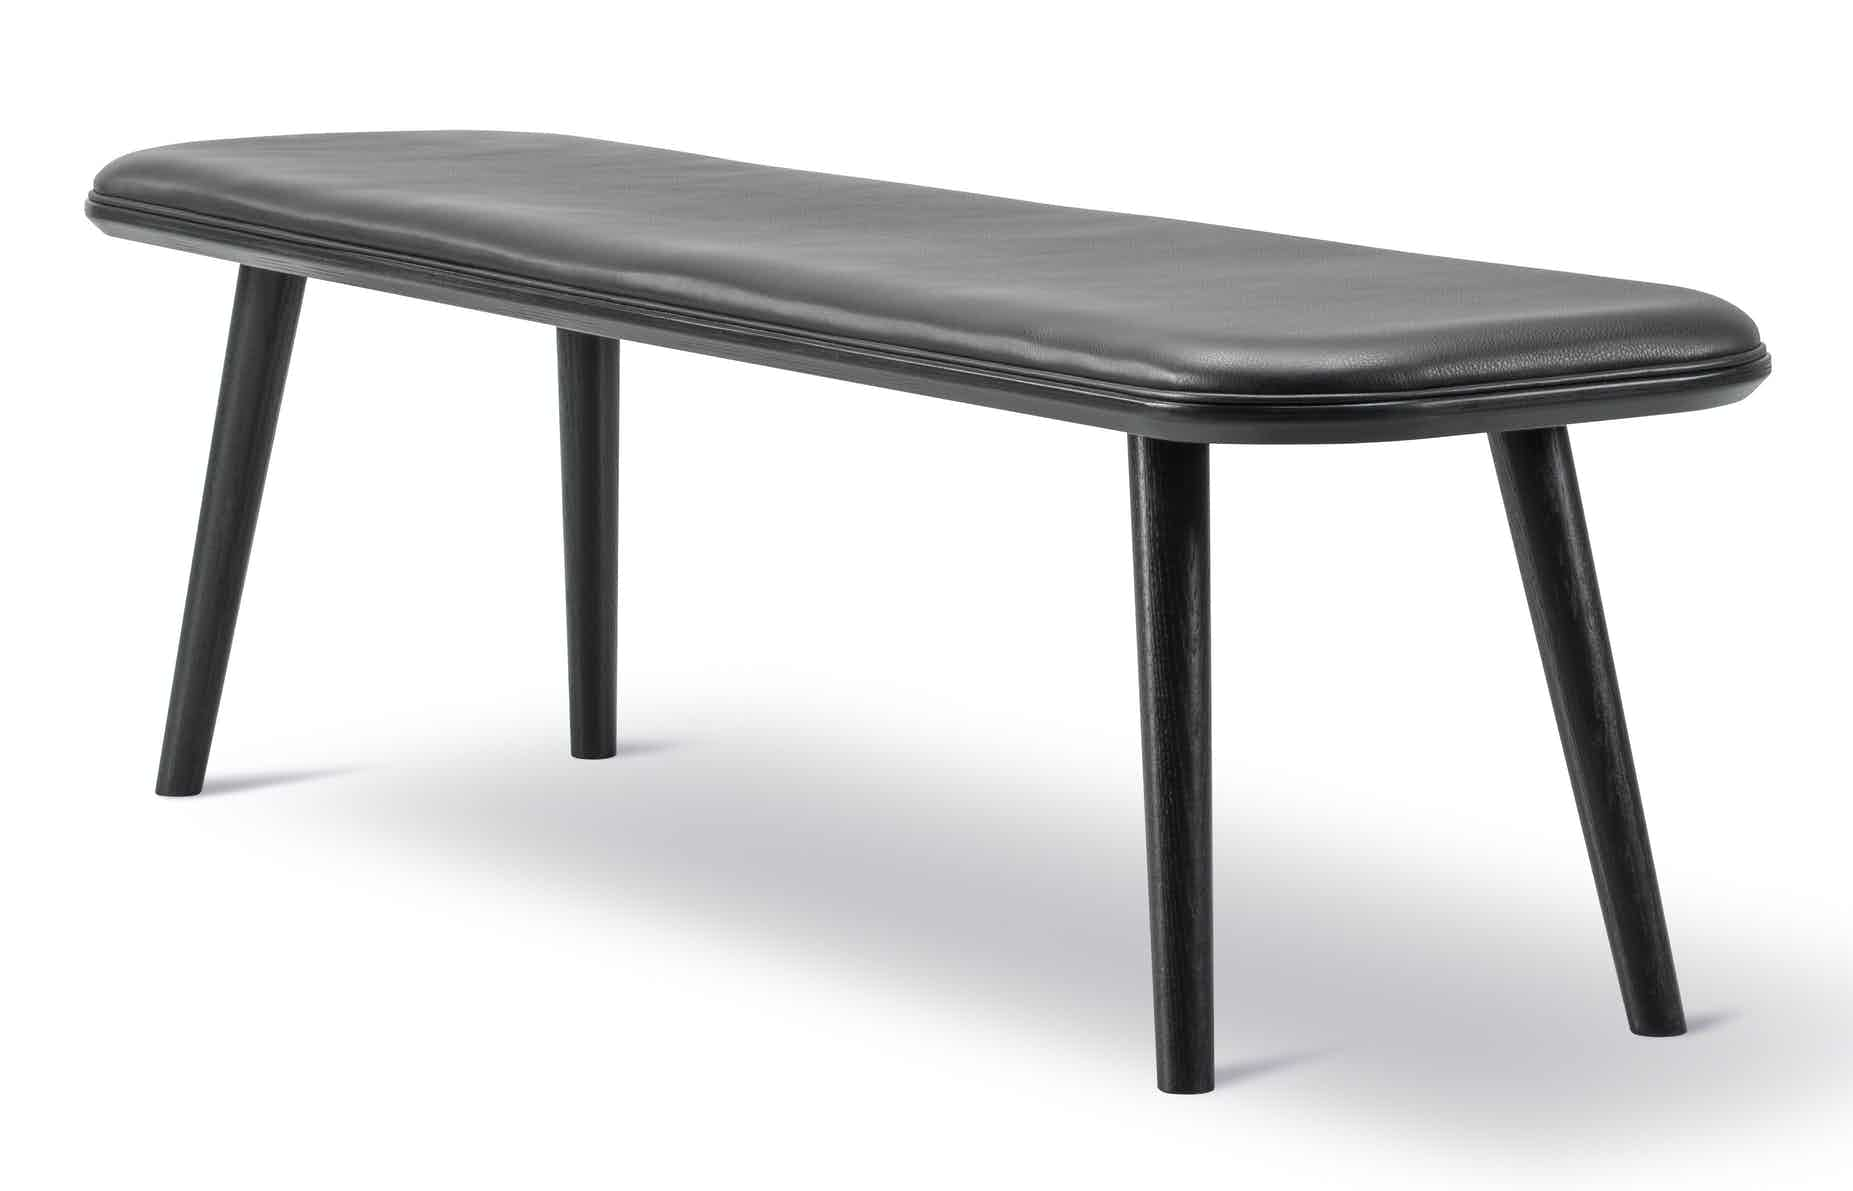 Fredericia Furniture Spine Wood Bench Angle Haute Living